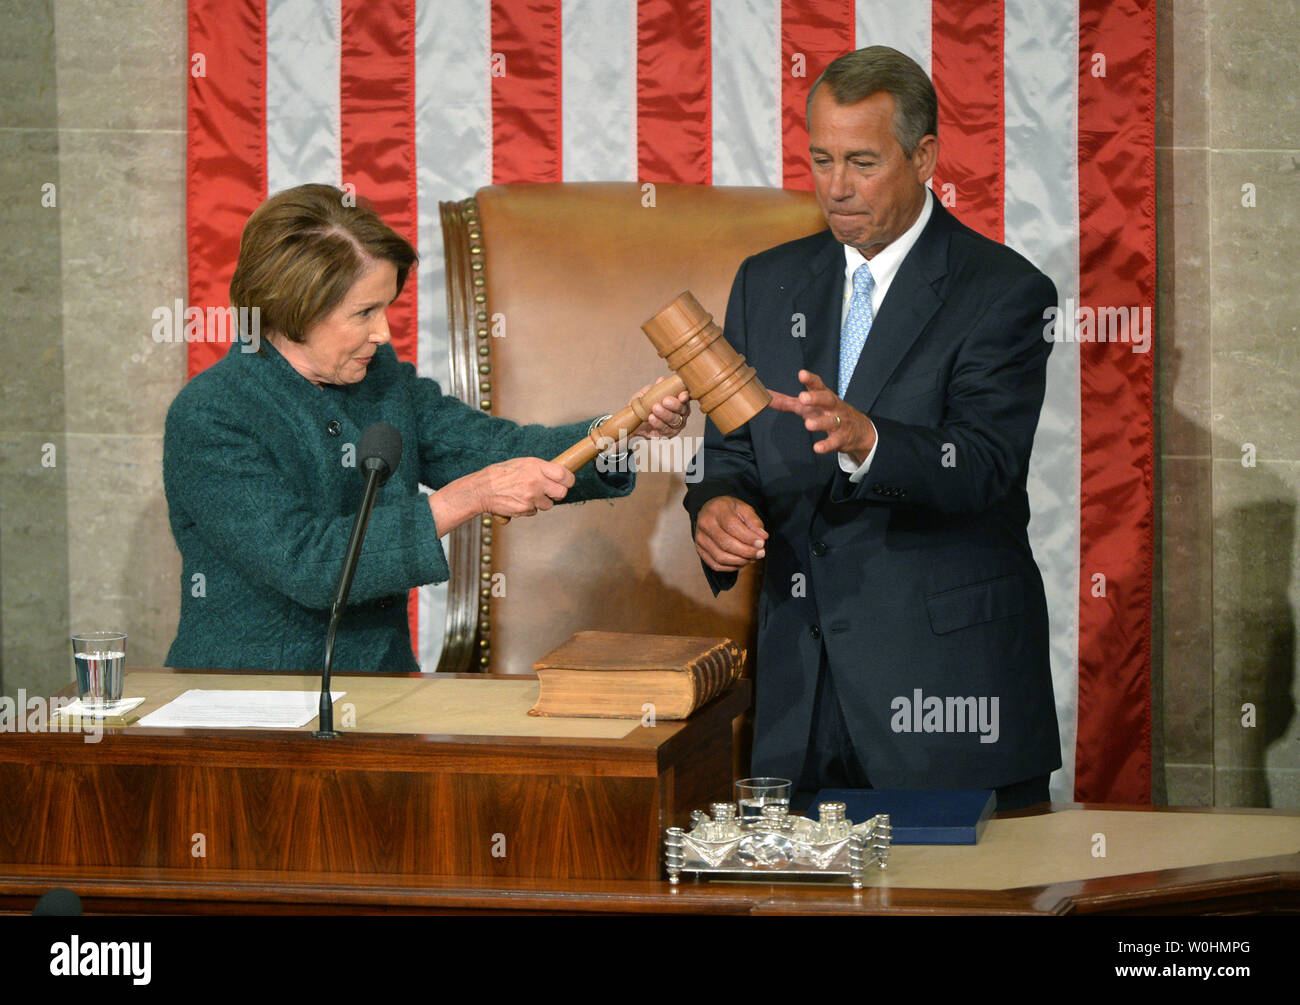 House Minority Leader Nancy Pelosi, D-CA, passes the gavel to Speaker of the House John Boehner, R-OH, after he was reelected as the Speaker during the first day of the 114th Congress, inside the House Chambers of the U.S. Capitol Building in Washington, D.C. on January 6, 2015. Photo by Kevin Dietsch/UPI - Stock Image